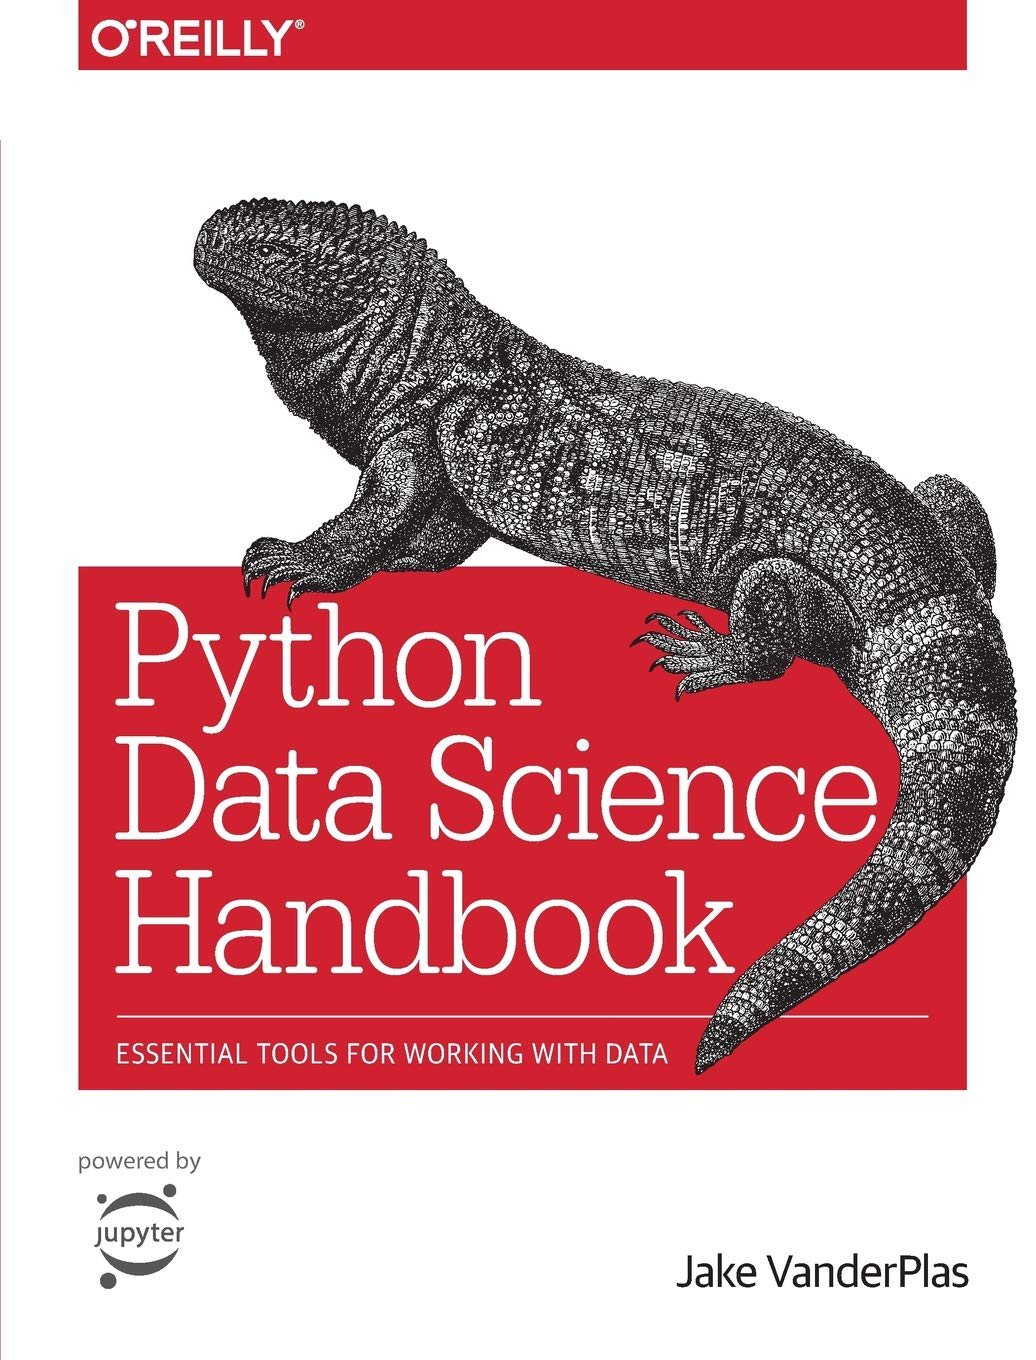 Python Data Science Handbook: Essential Tools for Working with Data by imusti